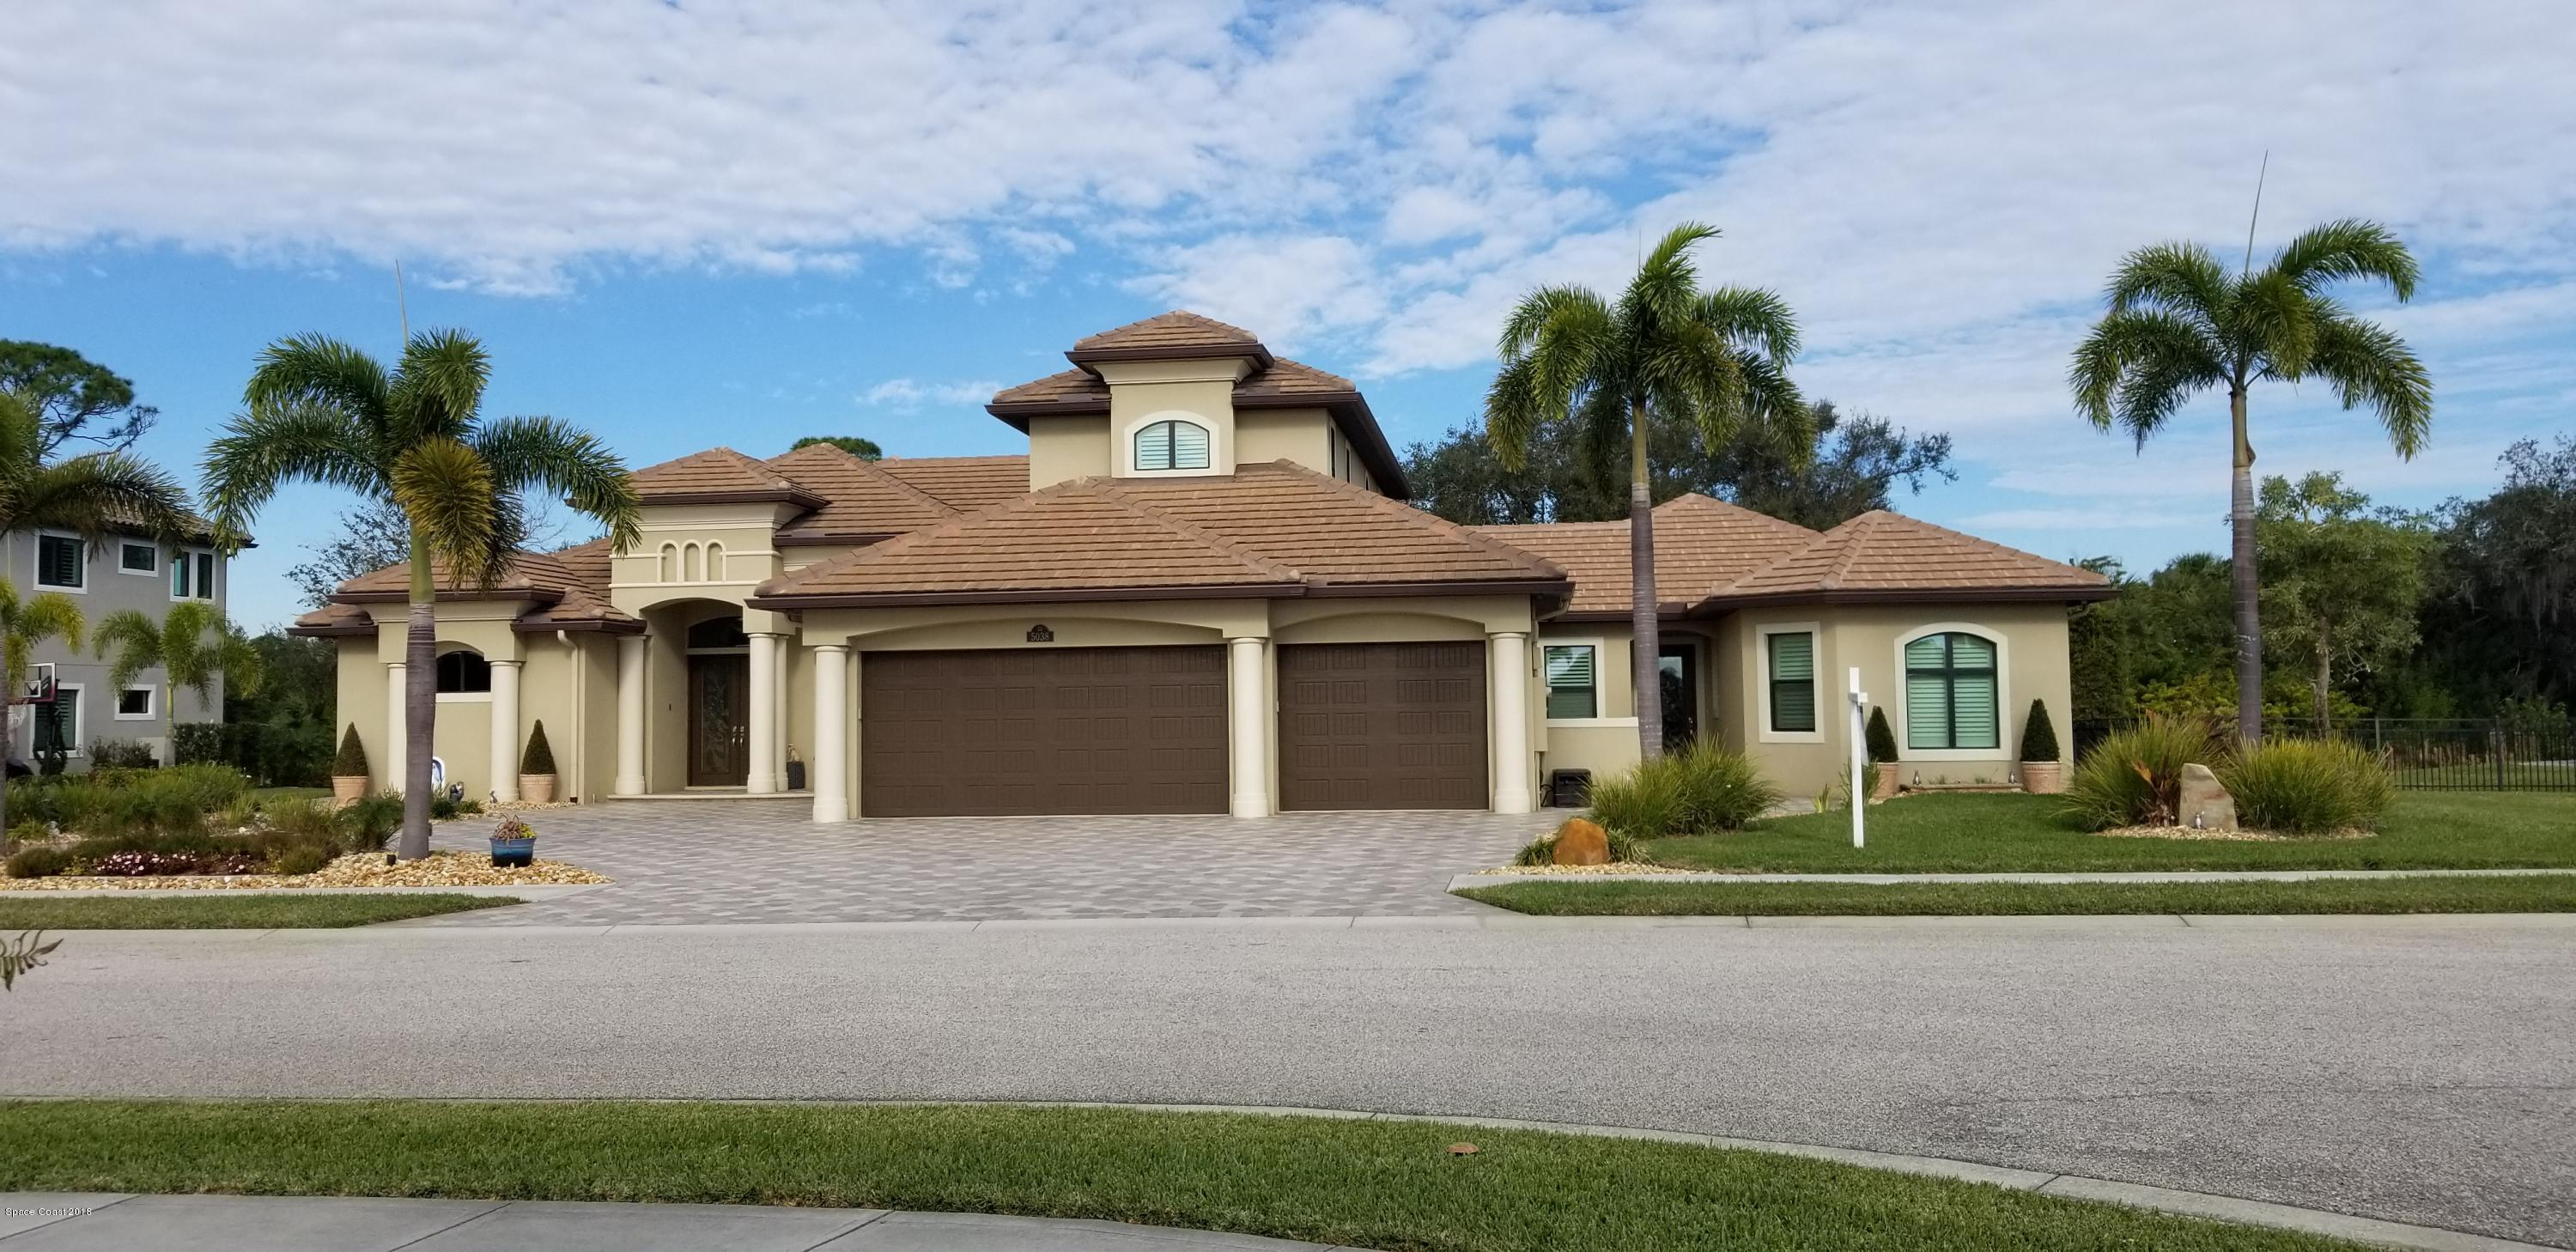 Single Family Homes for Sale at 5038 Duson Rockledge, Florida 32955 United States